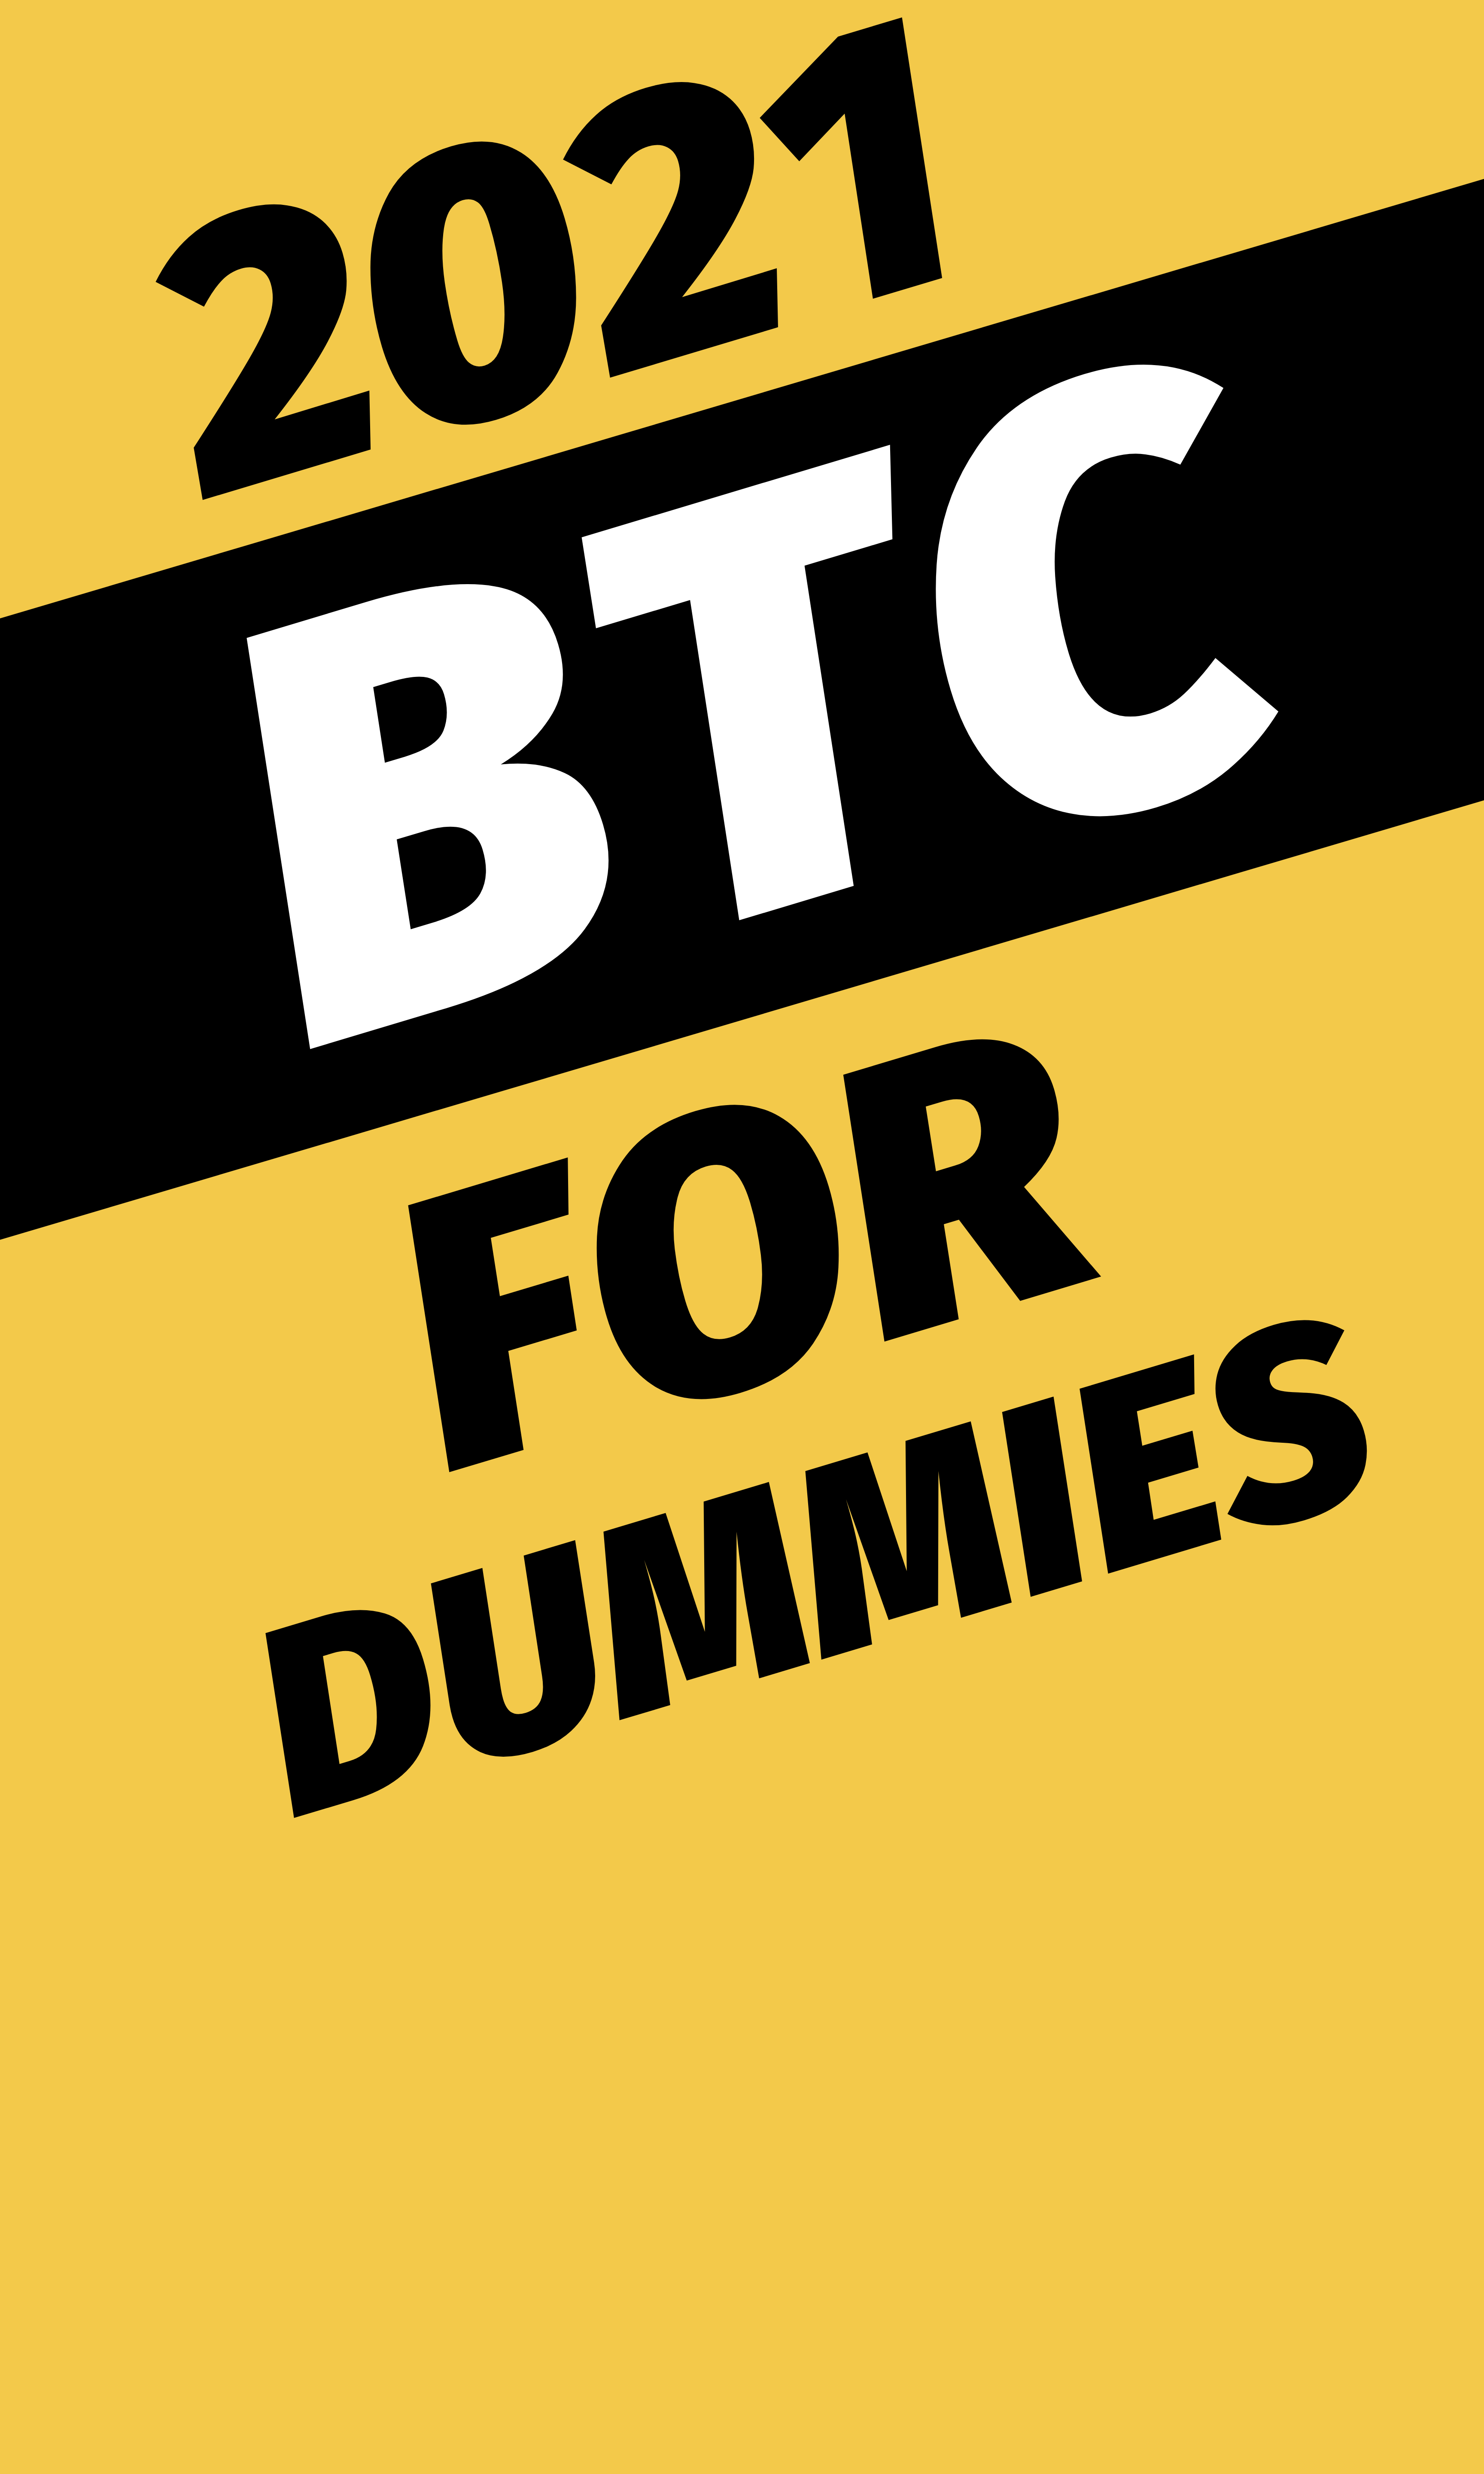 1 usd to bitcoins for dummies binary options leading indicators for safety